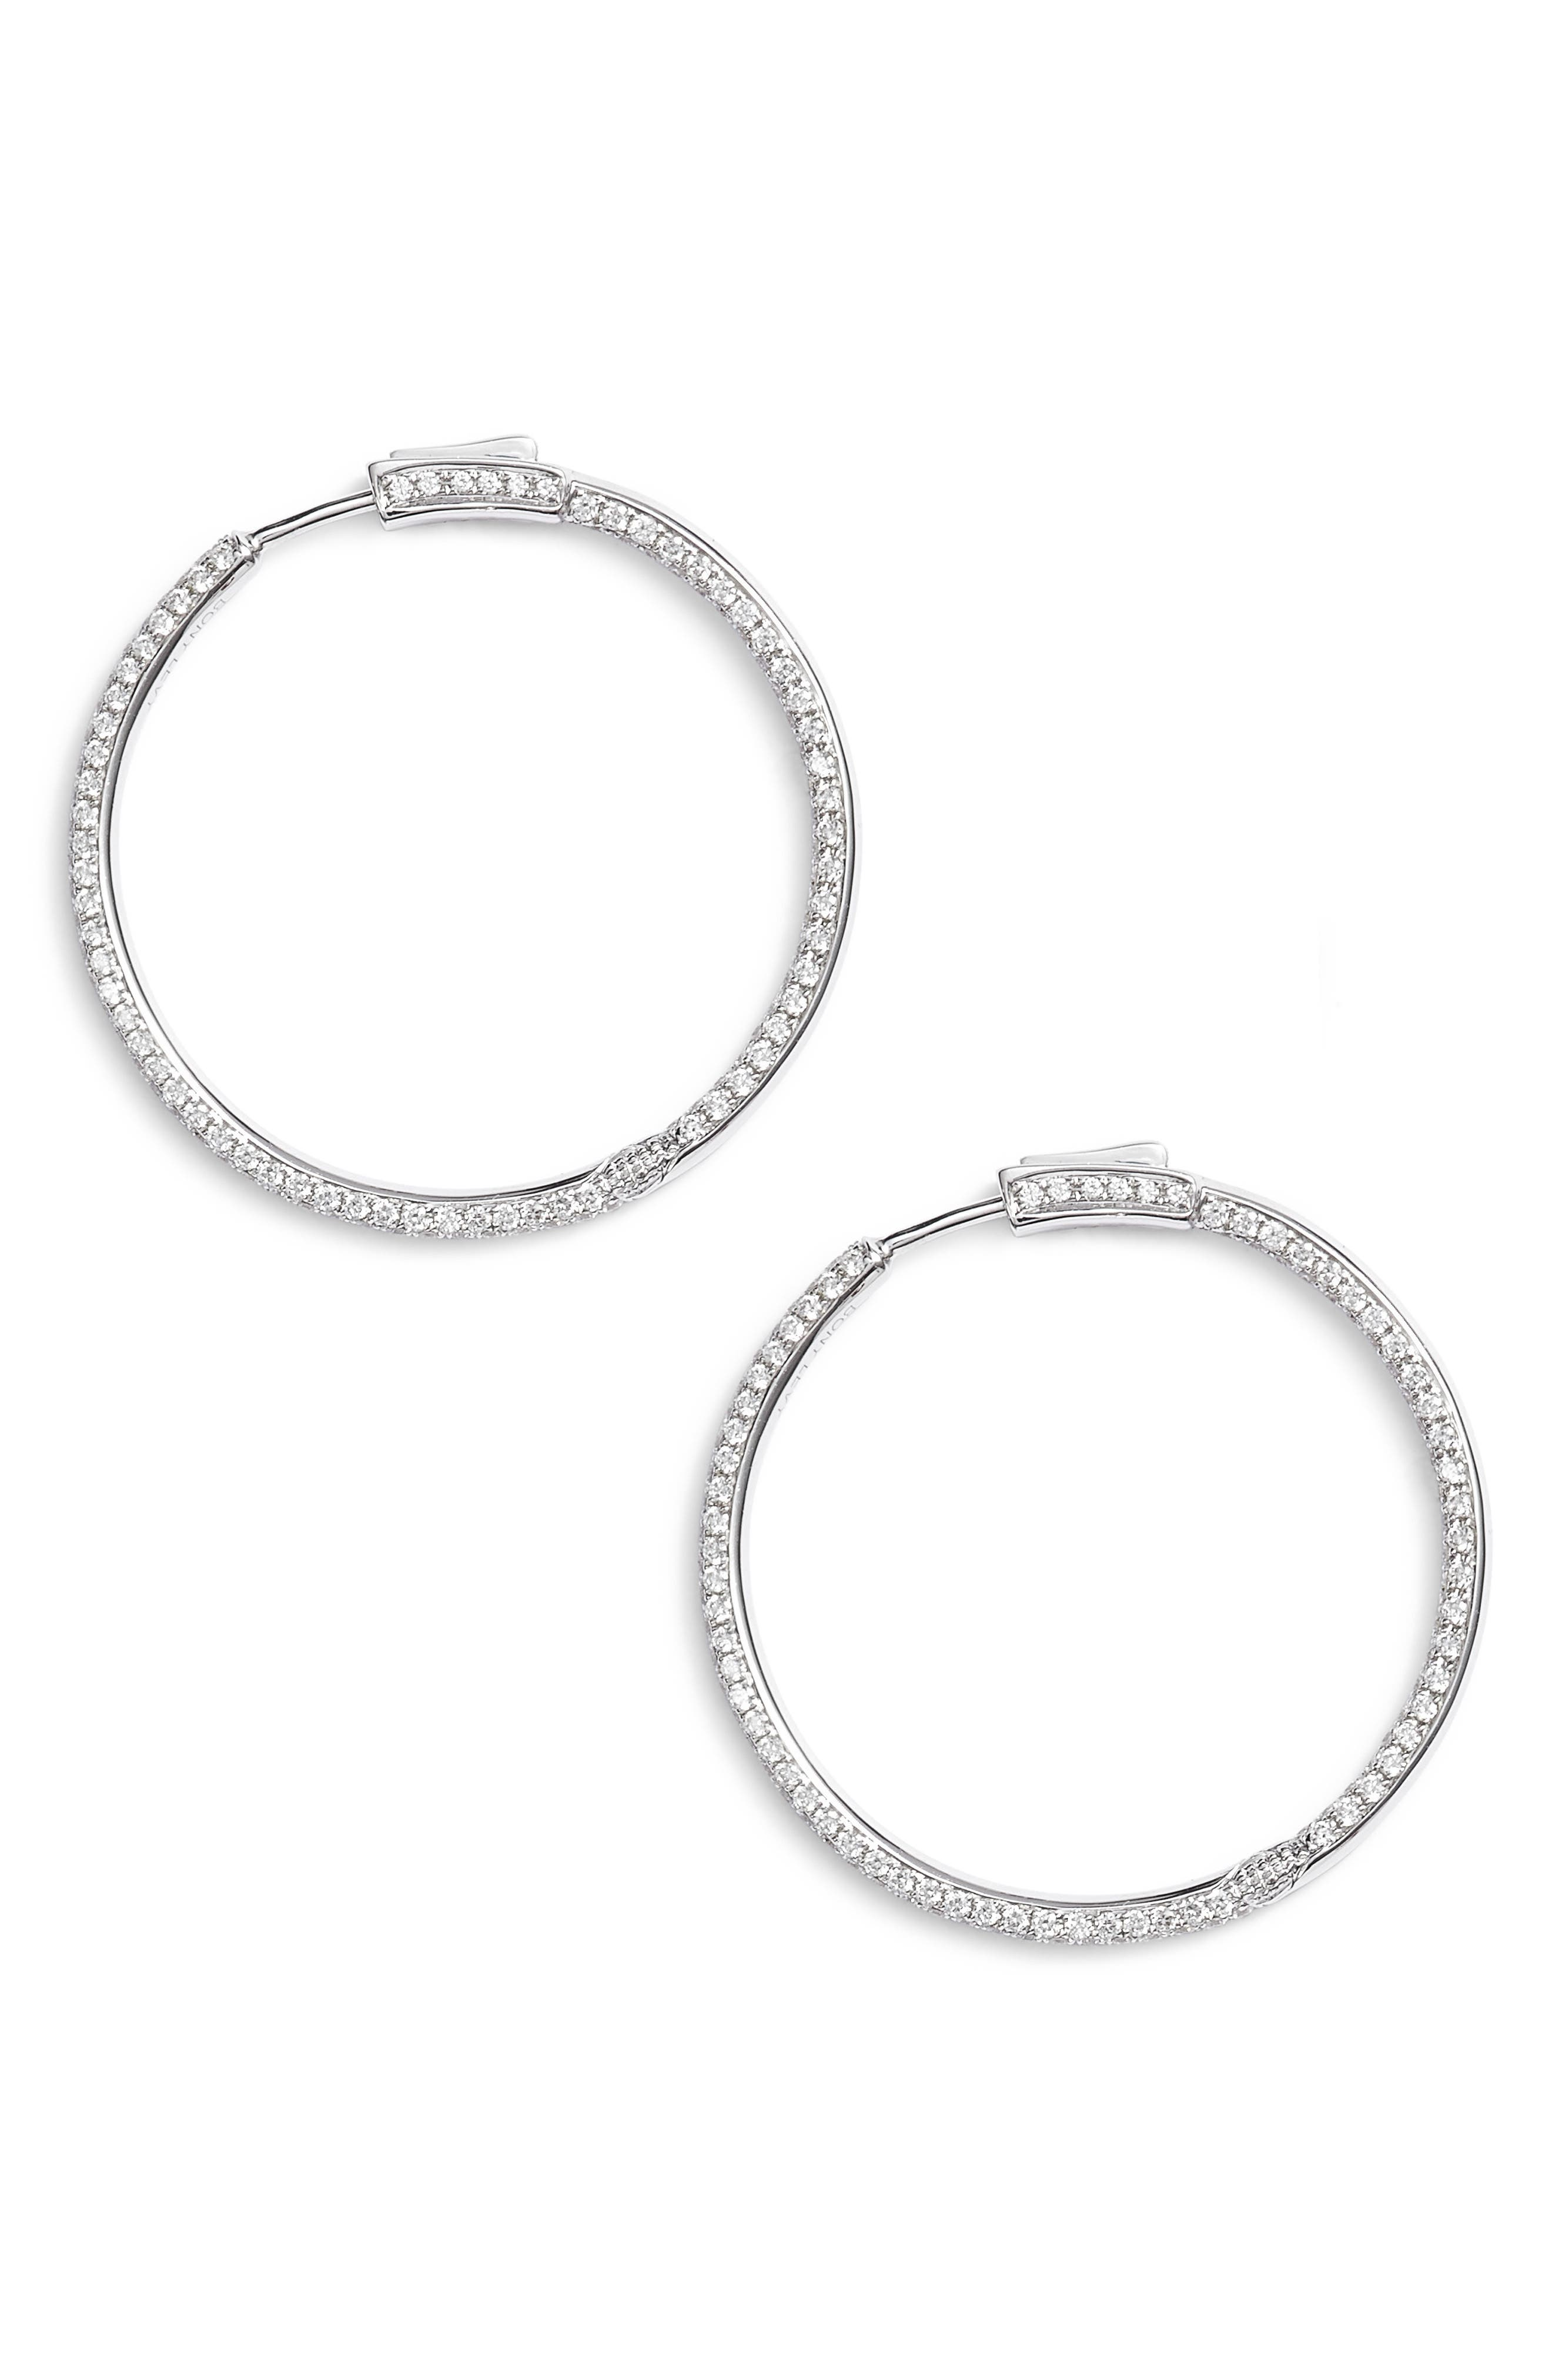 Inside Out Diamond Hoop Earrings,                             Main thumbnail 1, color,                             WHITE GOLD